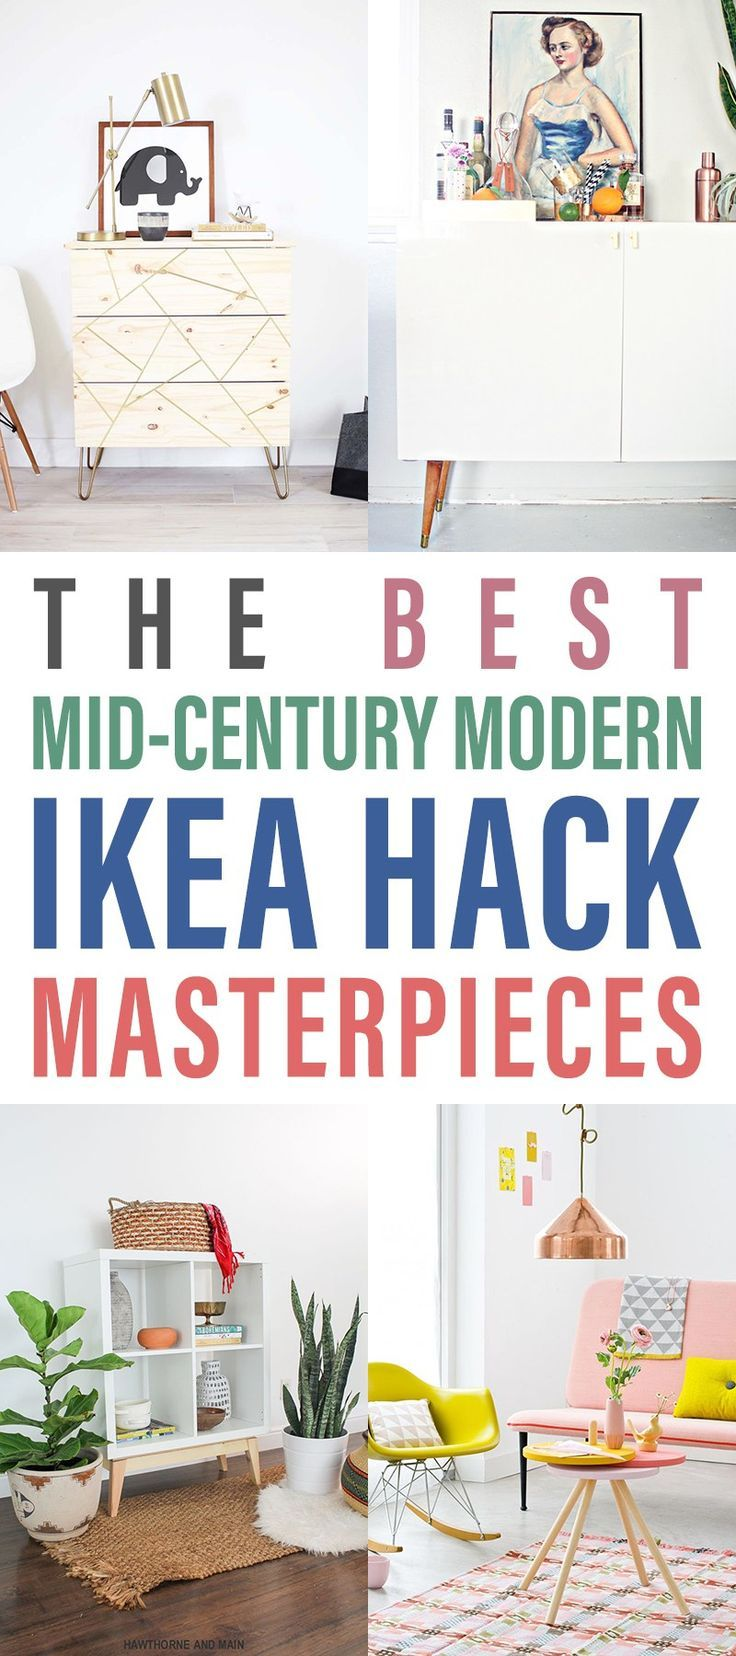 The Best Mid Century Modern IKEA Hack Masterpieces   You are going to be amazed at what you can create!  These IKEA Hacks are just incredible and so high end looking!!!  You can make these all on a budget which is fabulous!  #IKEAHacks #IKEA #IKEAHack #MidCenturyModerIKEAHacks #MidCenturyModernDIYFurniture